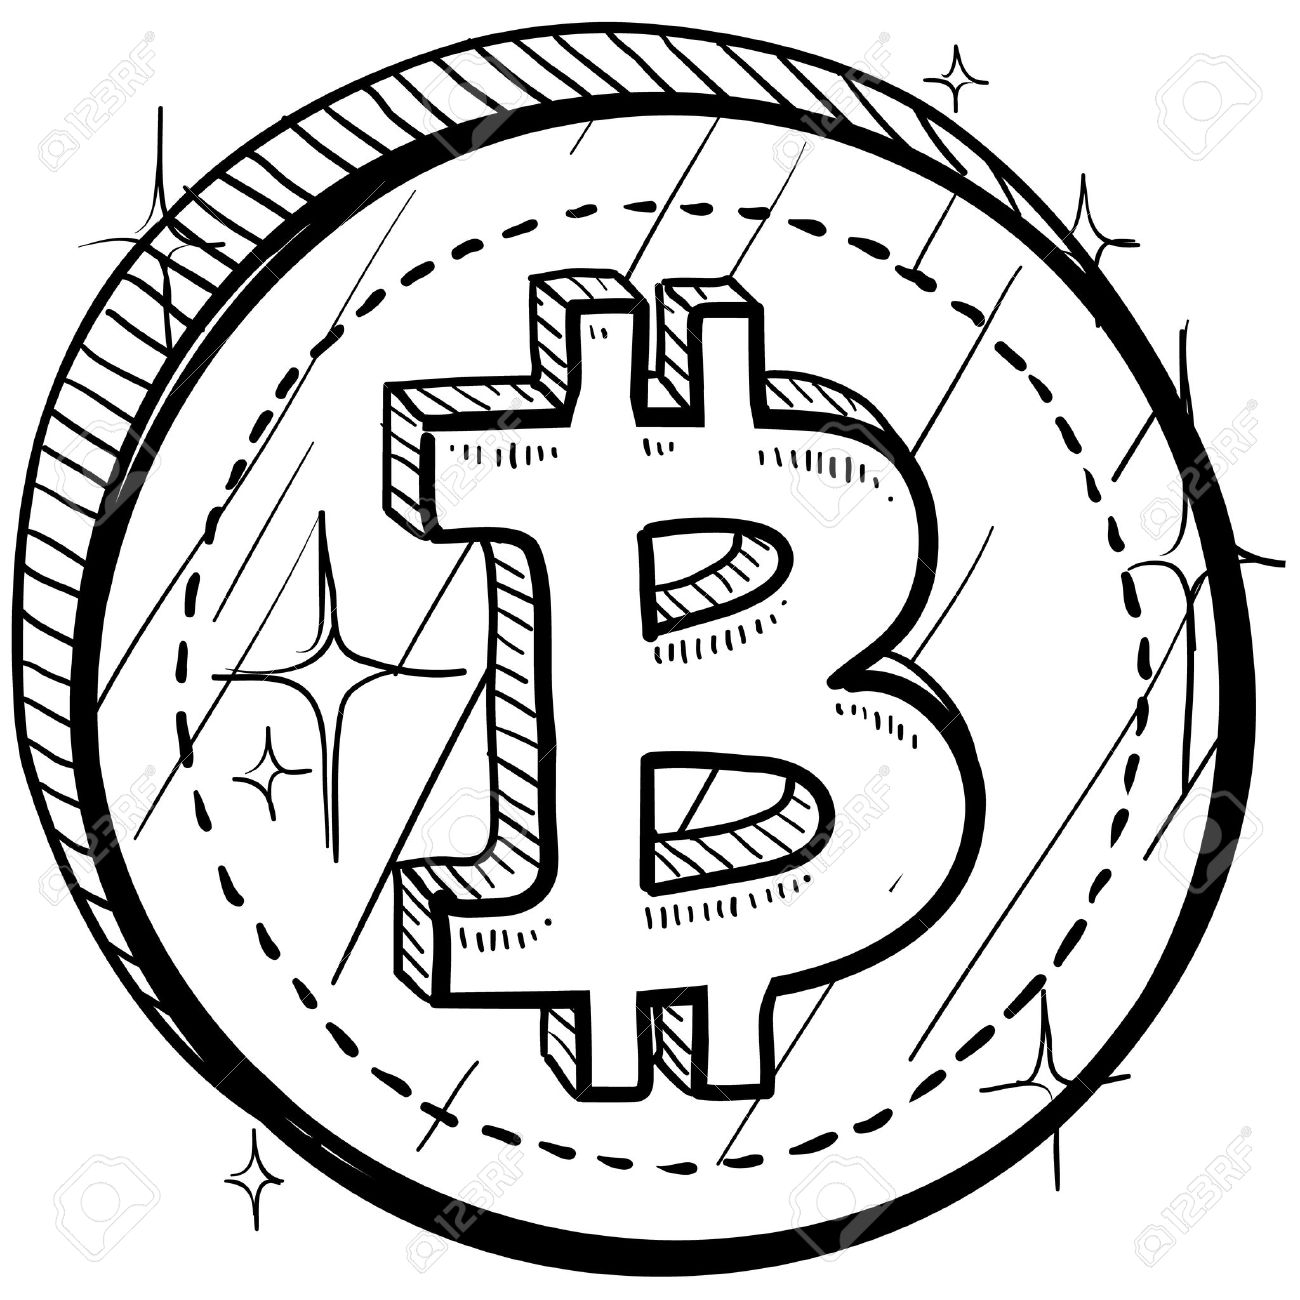 Doodle Style Coin With Currency Symbol Bitcoin Royalty Free